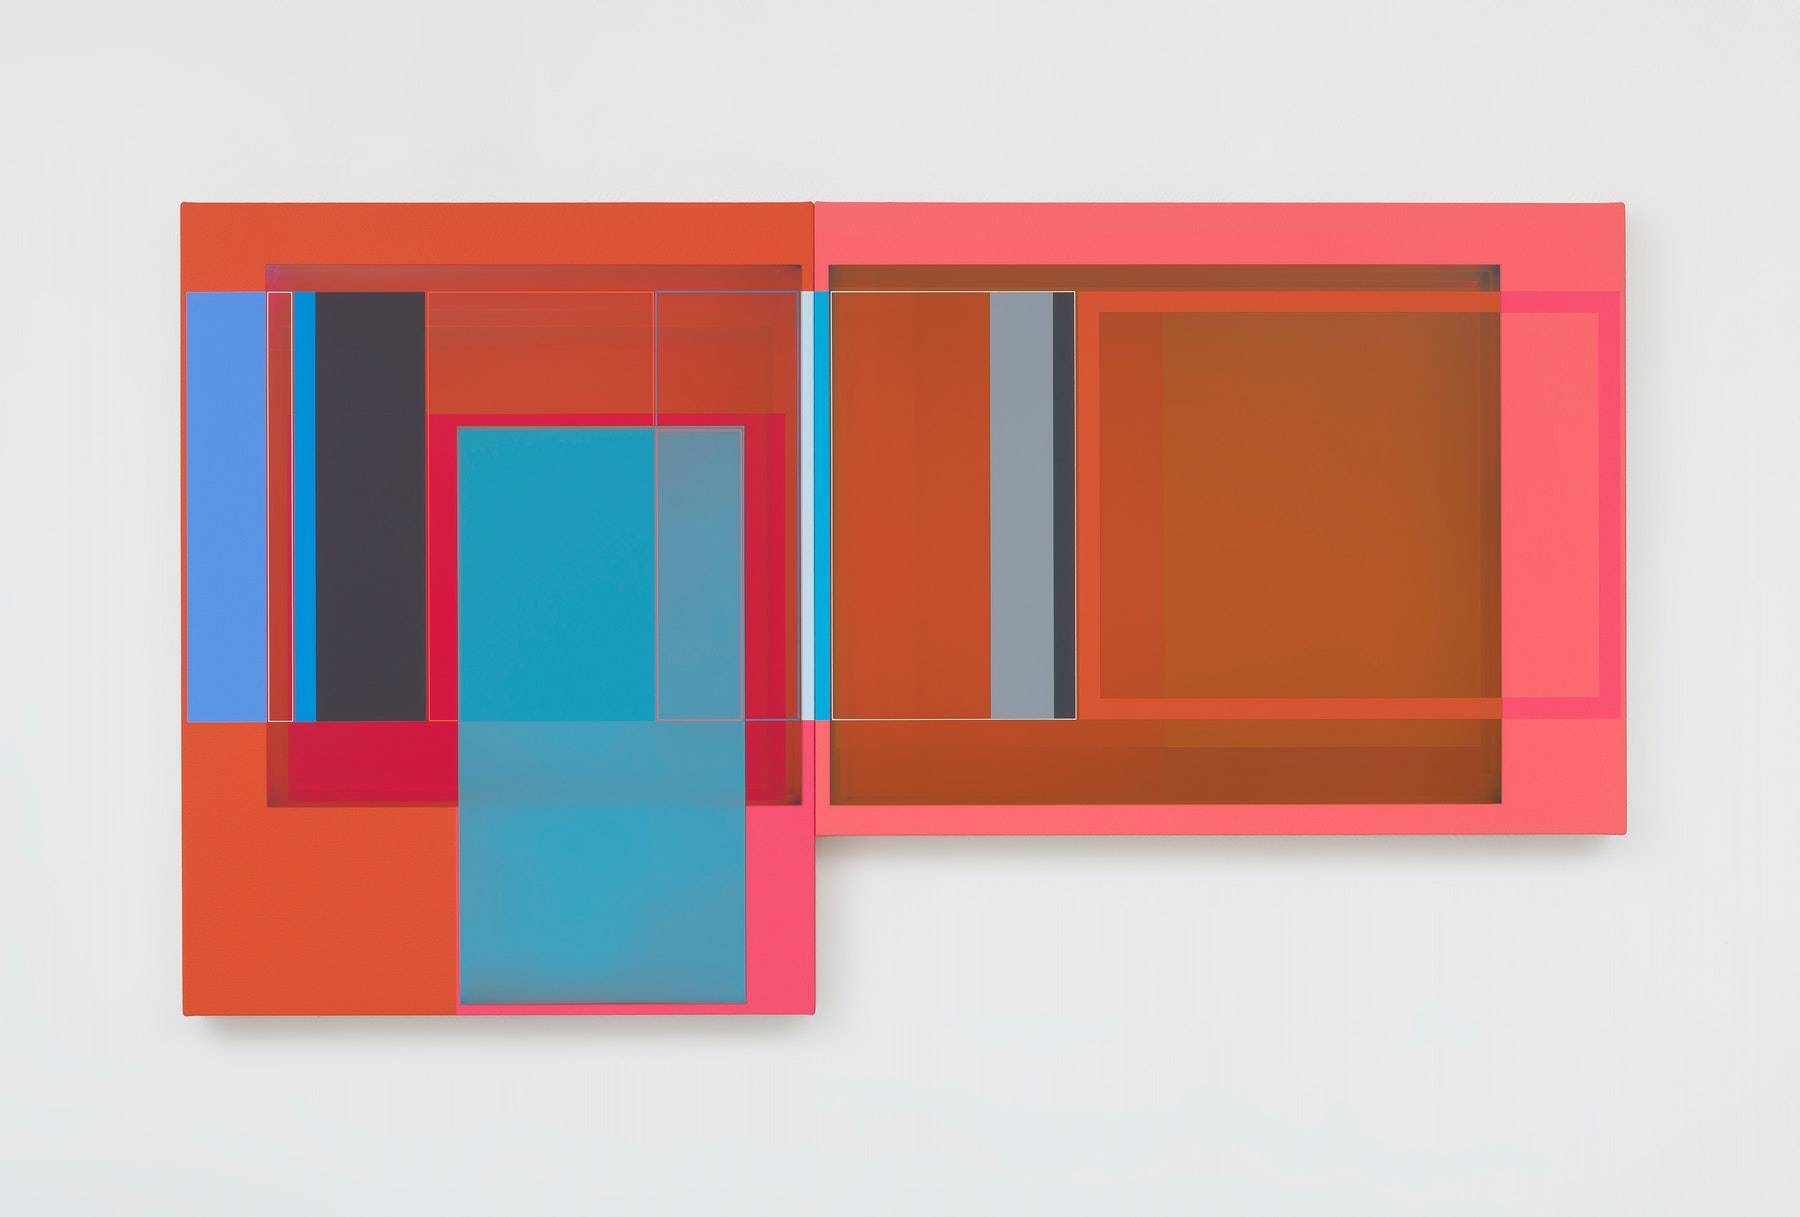 """Patrick Wilson """"Afternoon Breeze,"""" 2020 Acrylic on canvas 27"""" x 48"""" [HxW] (68.58 x 121.92 cm) Inventory #WIL588 Courtesy of the artist and Vielmetter Los Angeles Photo credit: Robert Wedemeyer"""